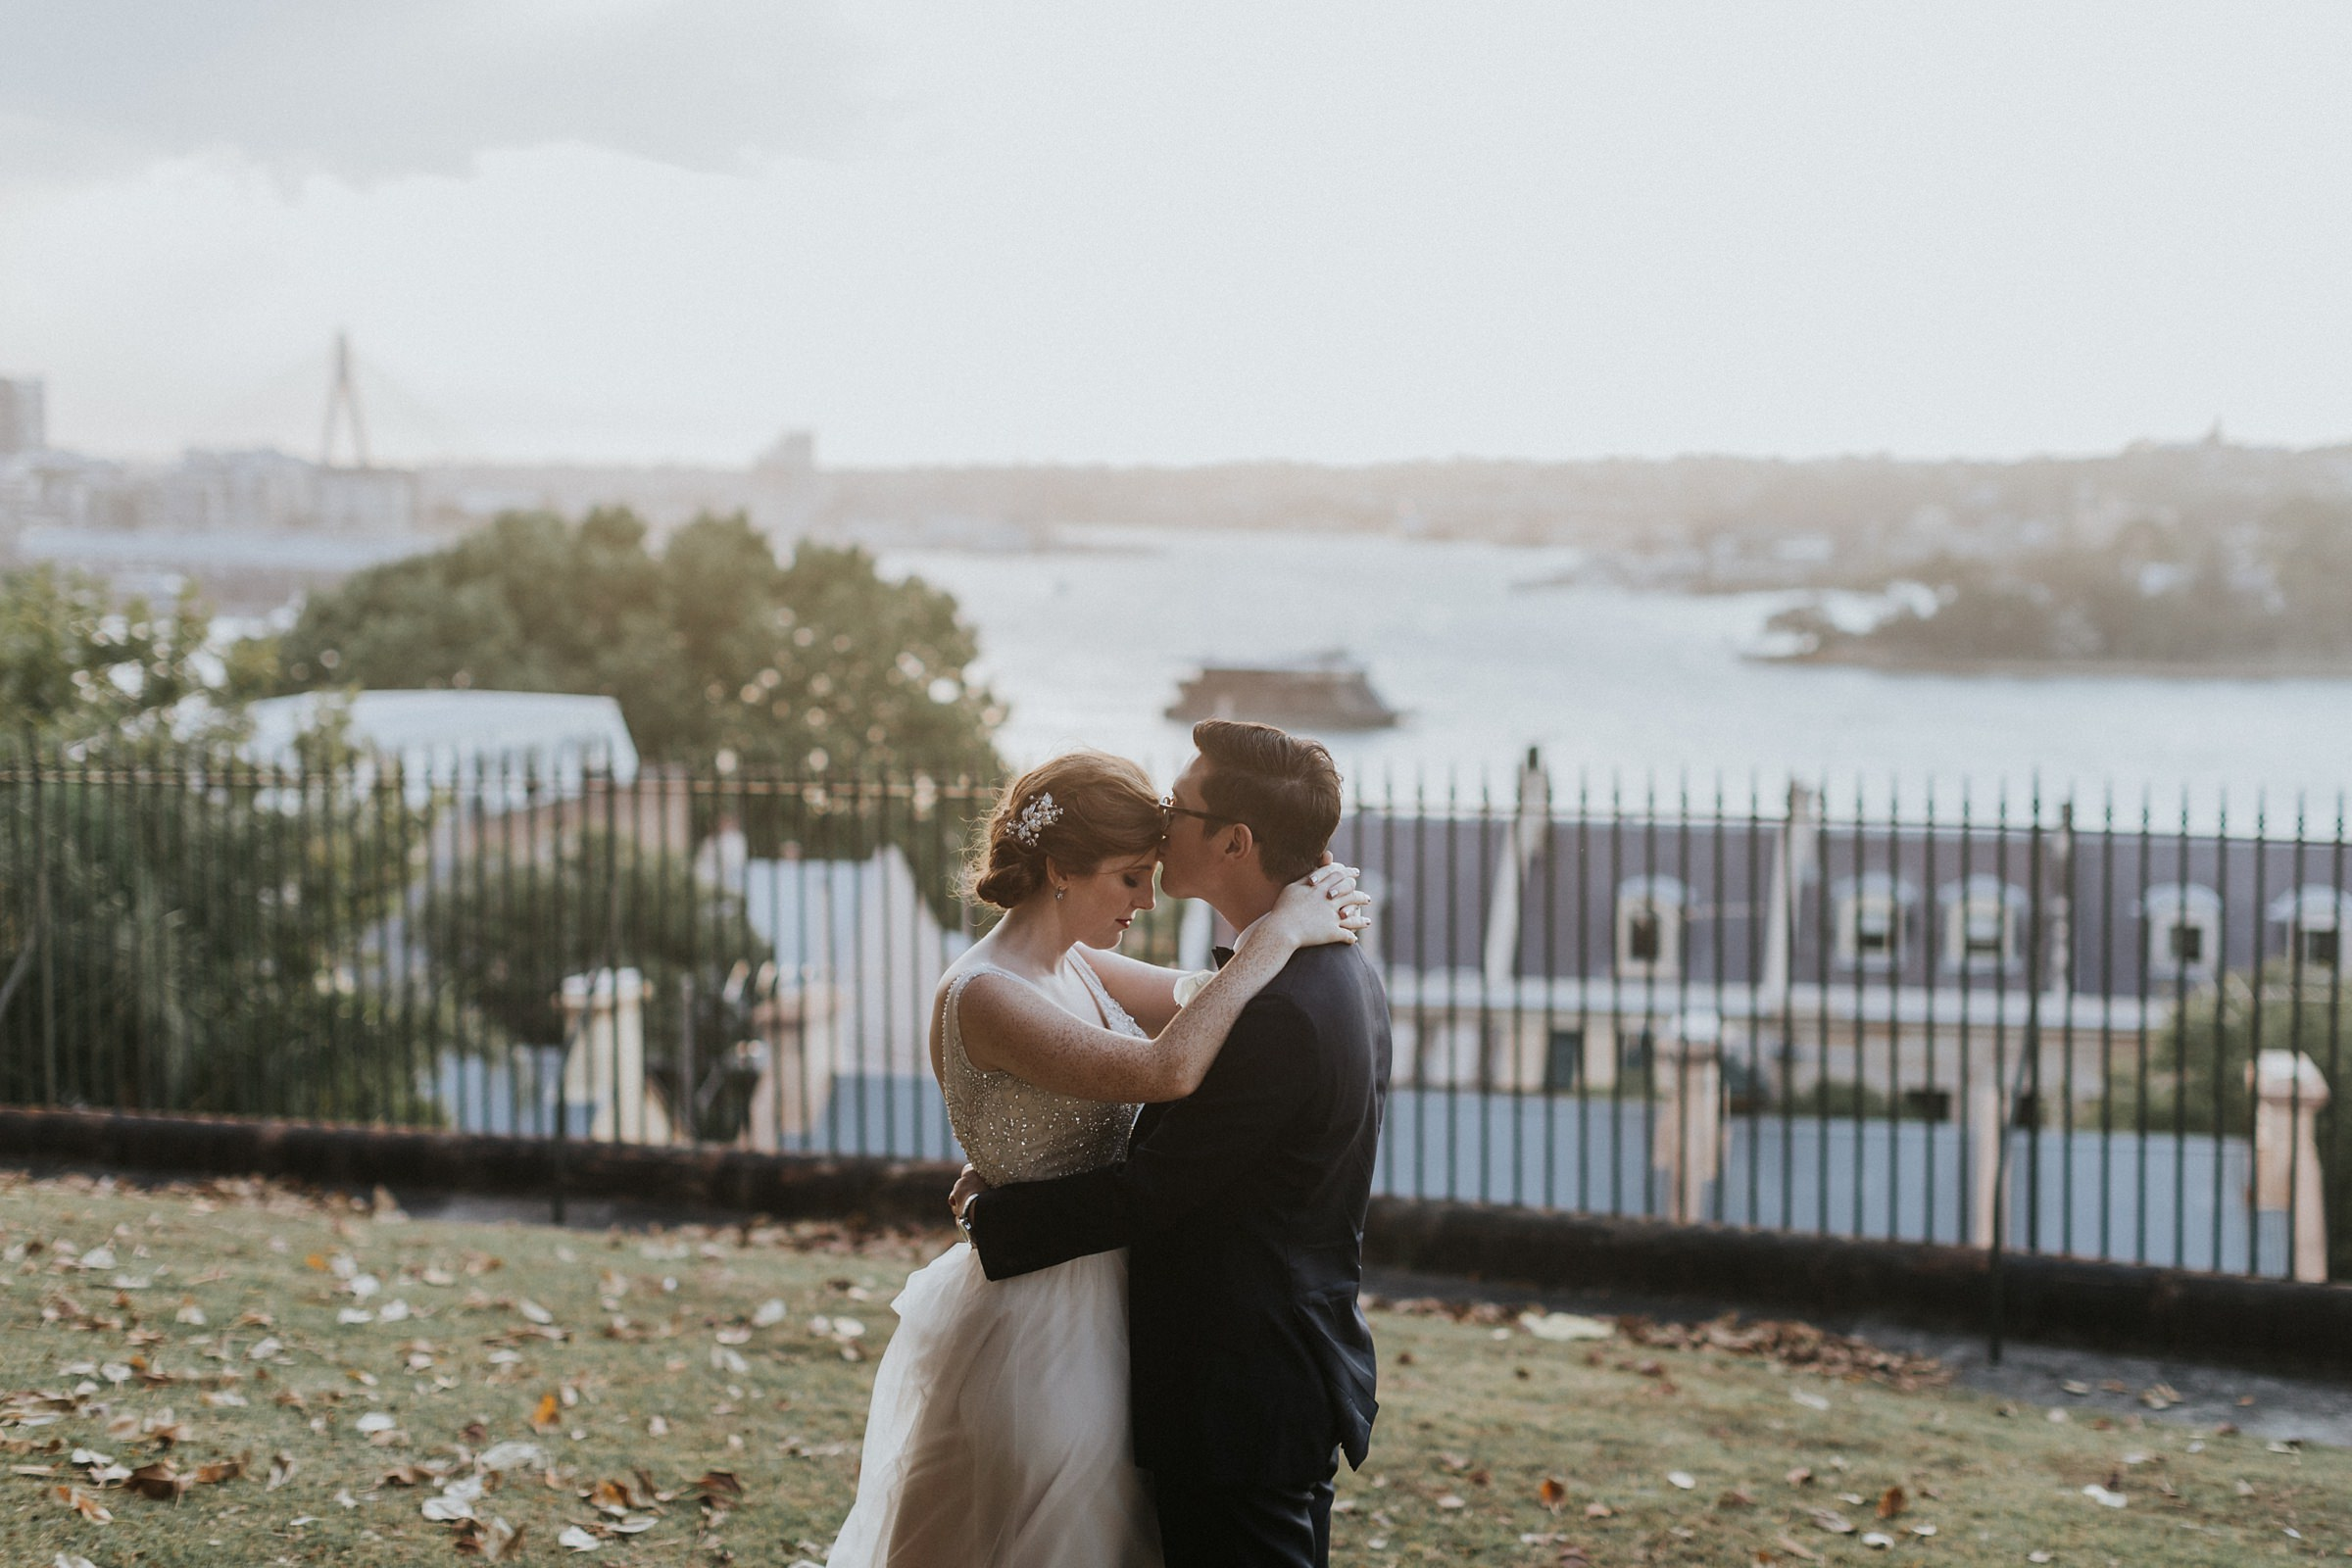 romantic wedding photos at the sydney observatory